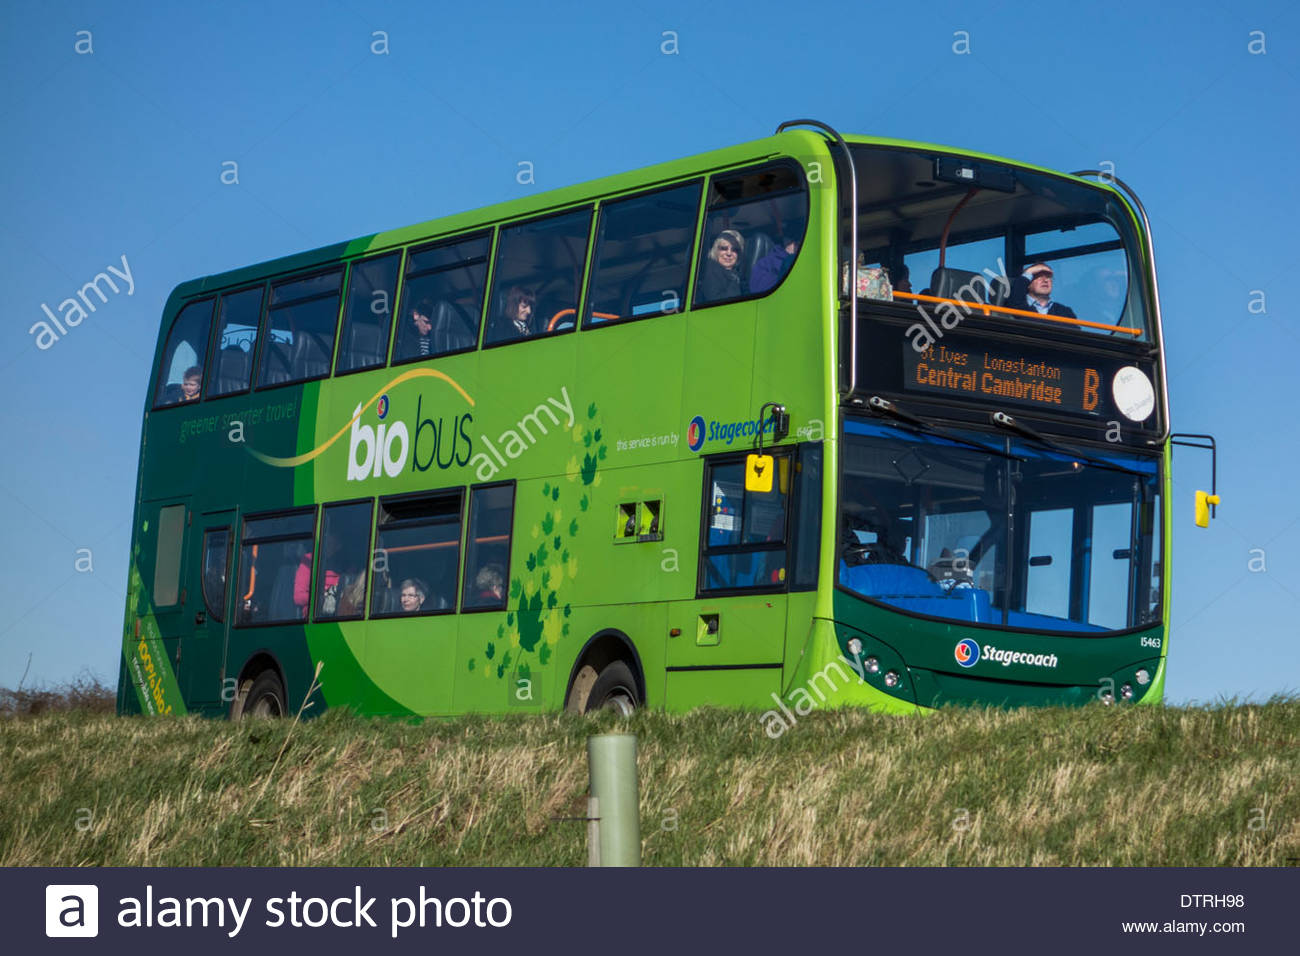 Double decker Stagecoach bio bus on an elevated section of the guided busway between St Ives and Cambridge - Stock Image